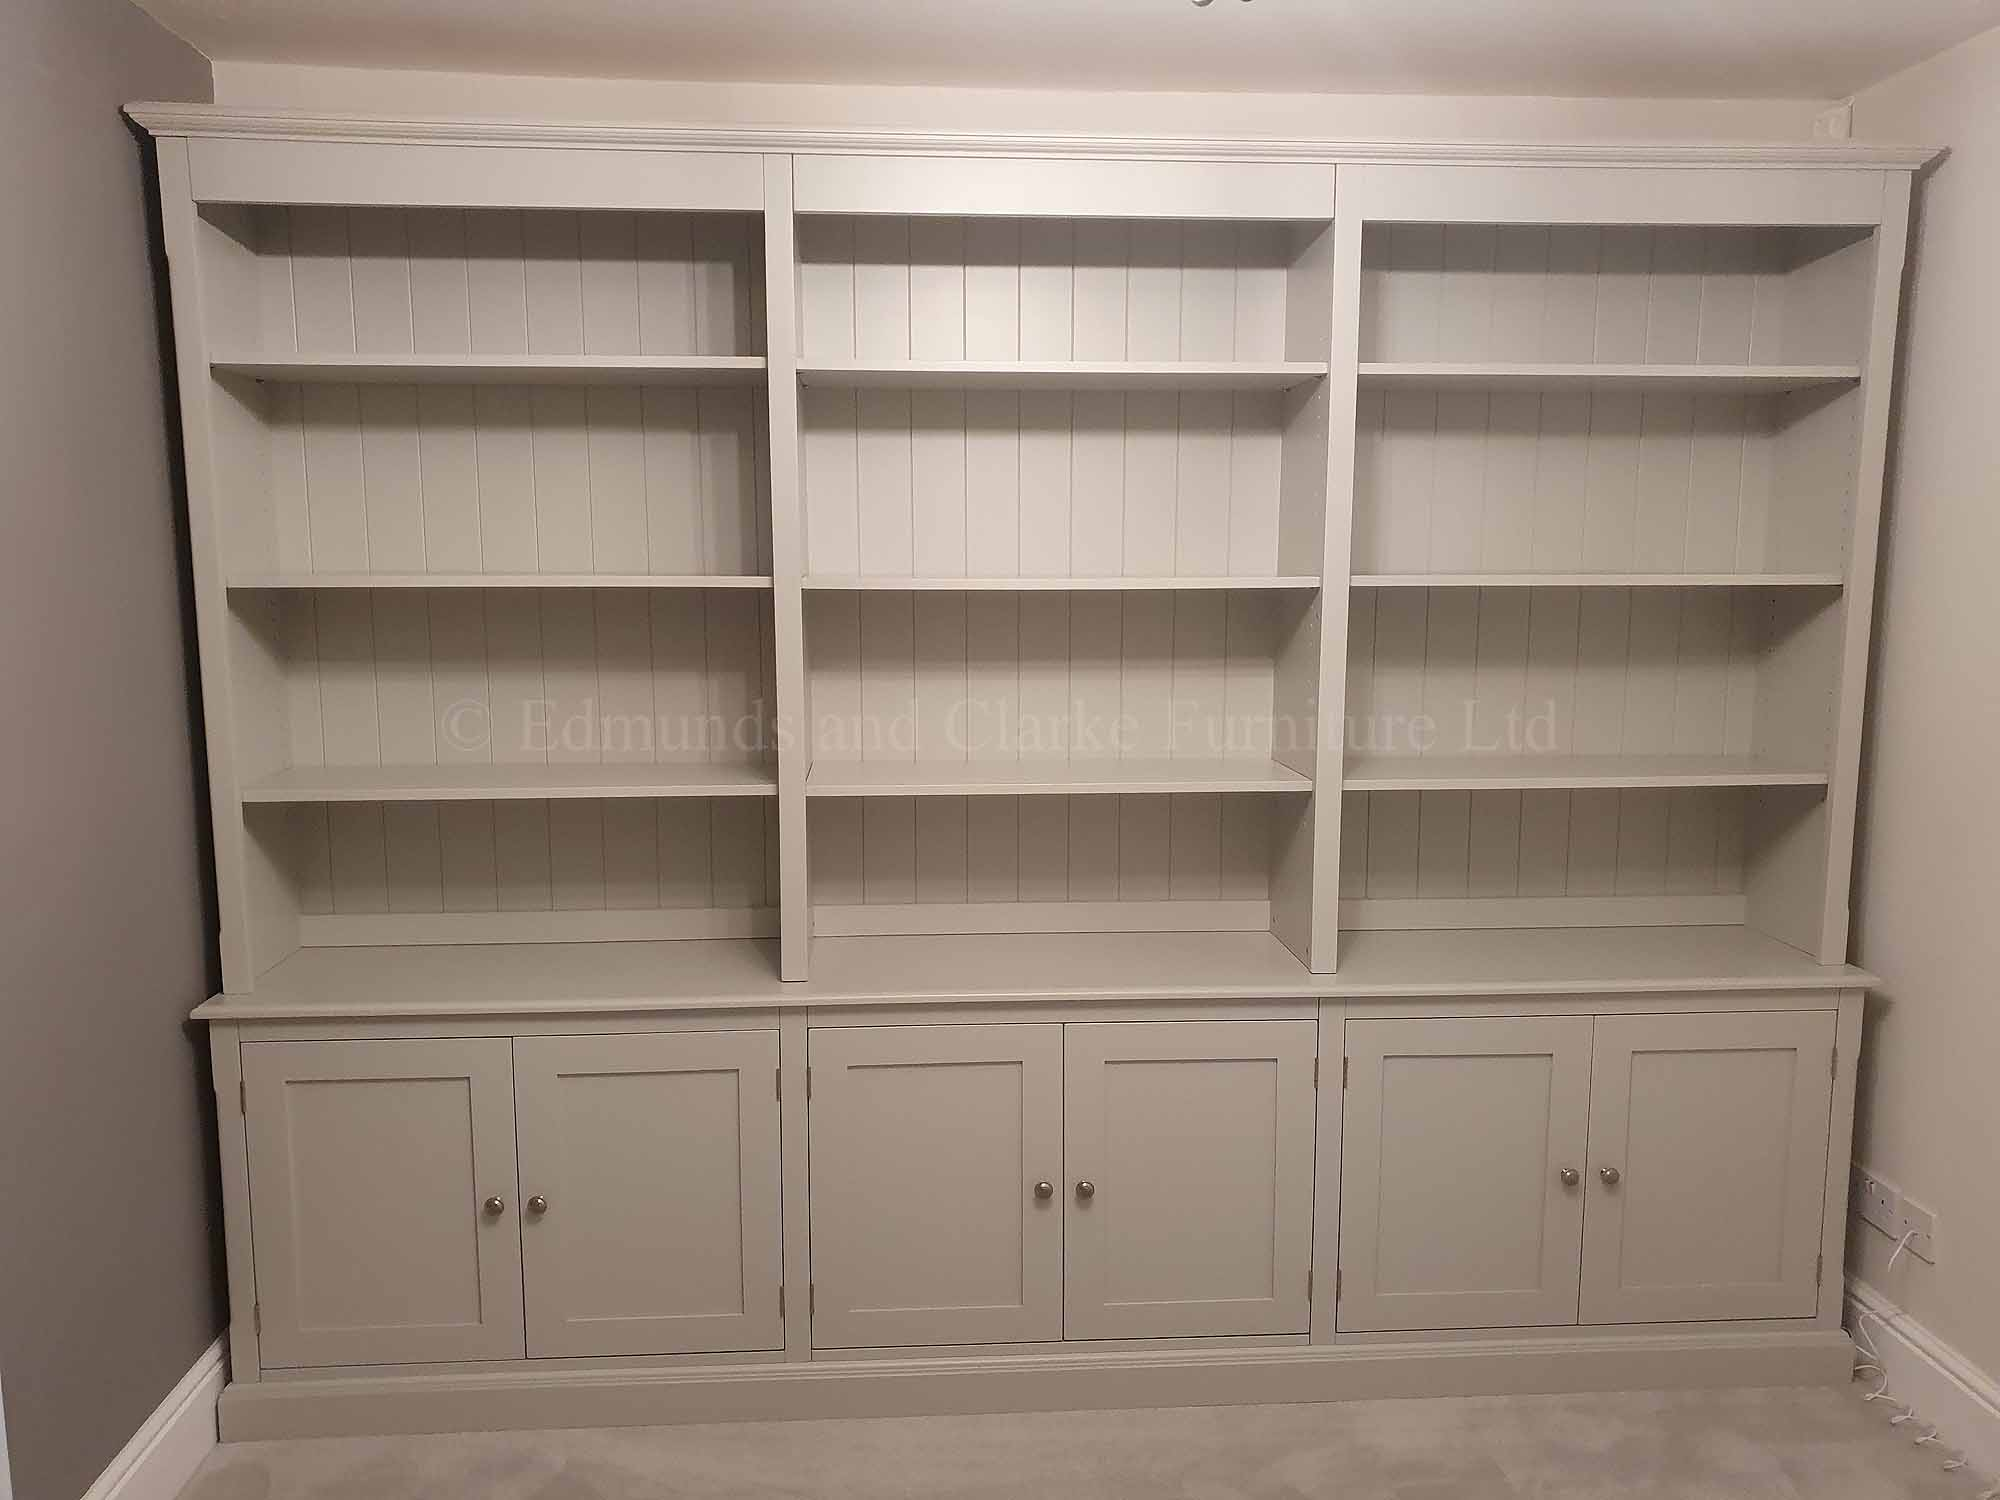 Painted 6 door wide bookcase with cupboards below painted pavilion grey all over